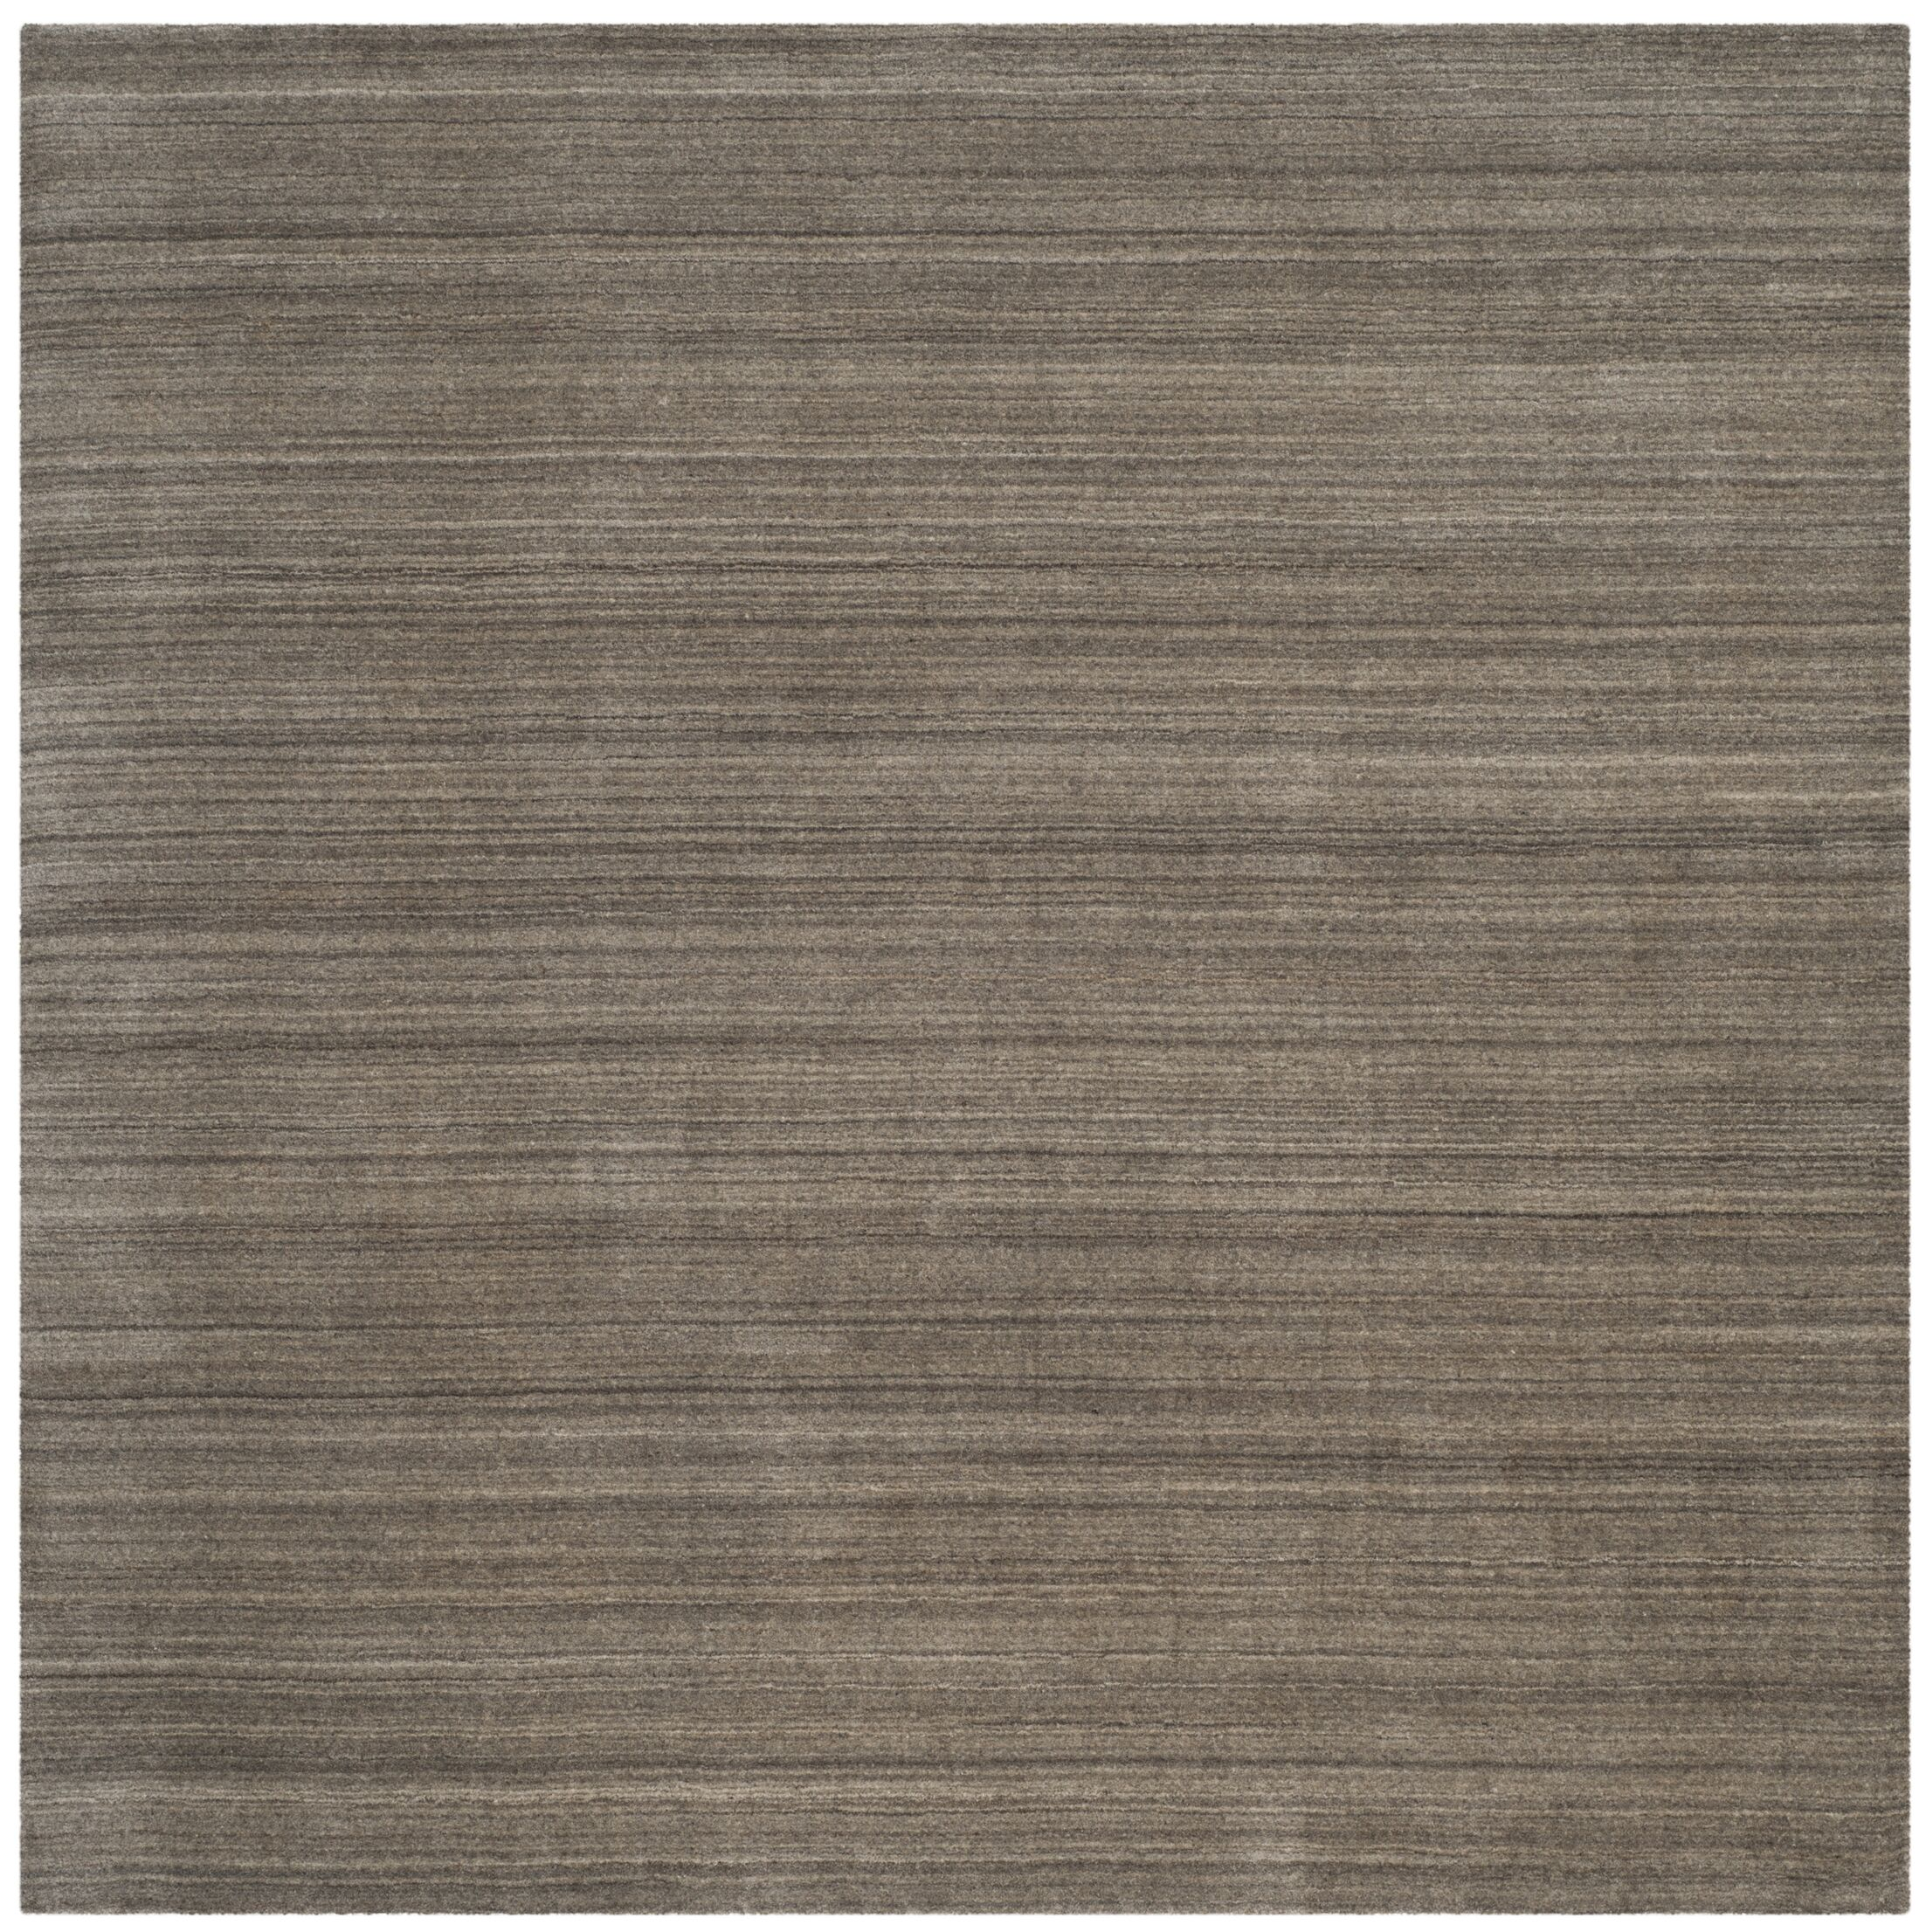 Anson Hand-Loomed Pewter Area Rug Rug Size: Square 6' x 6'